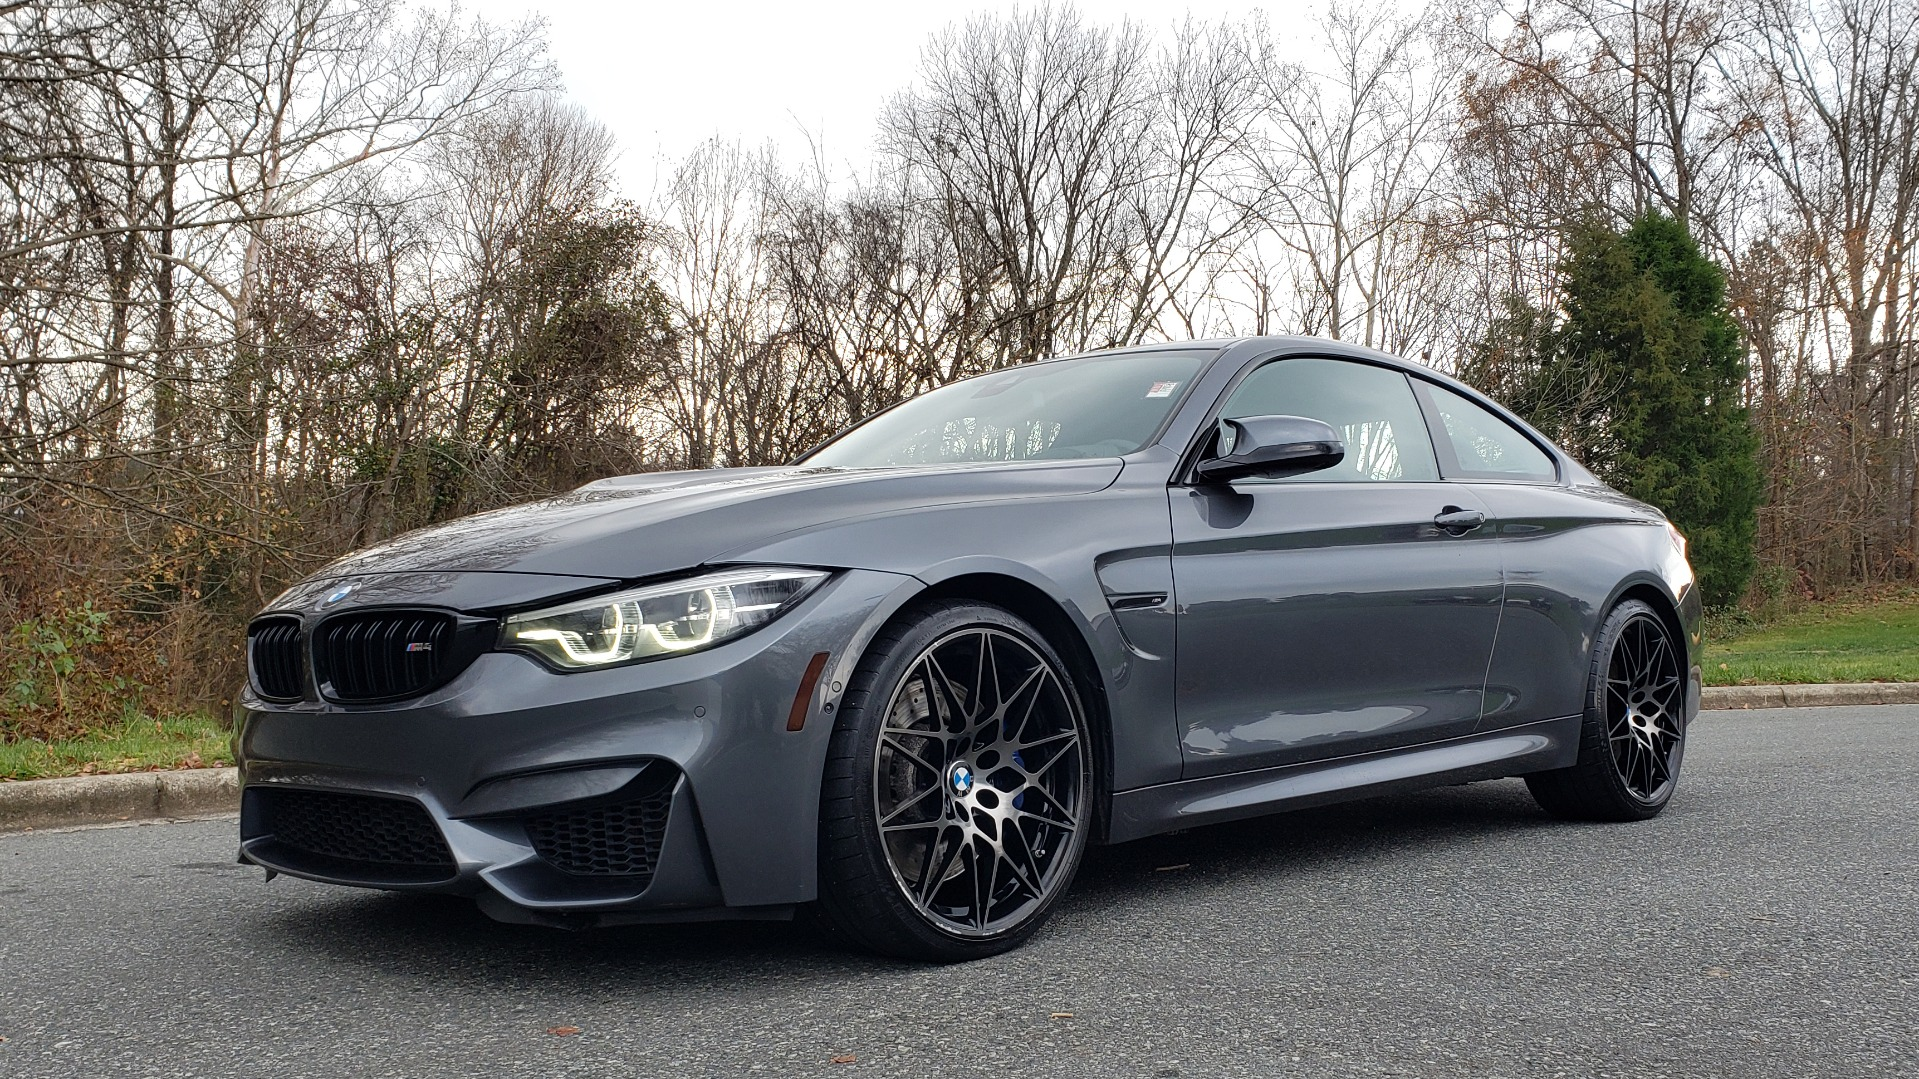 Used 2018 BMW M4 M-COMP / EXEC PKG / 7-SPD DBL CLUTCH / NAV / REARVIEW for sale Sold at Formula Imports in Charlotte NC 28227 2